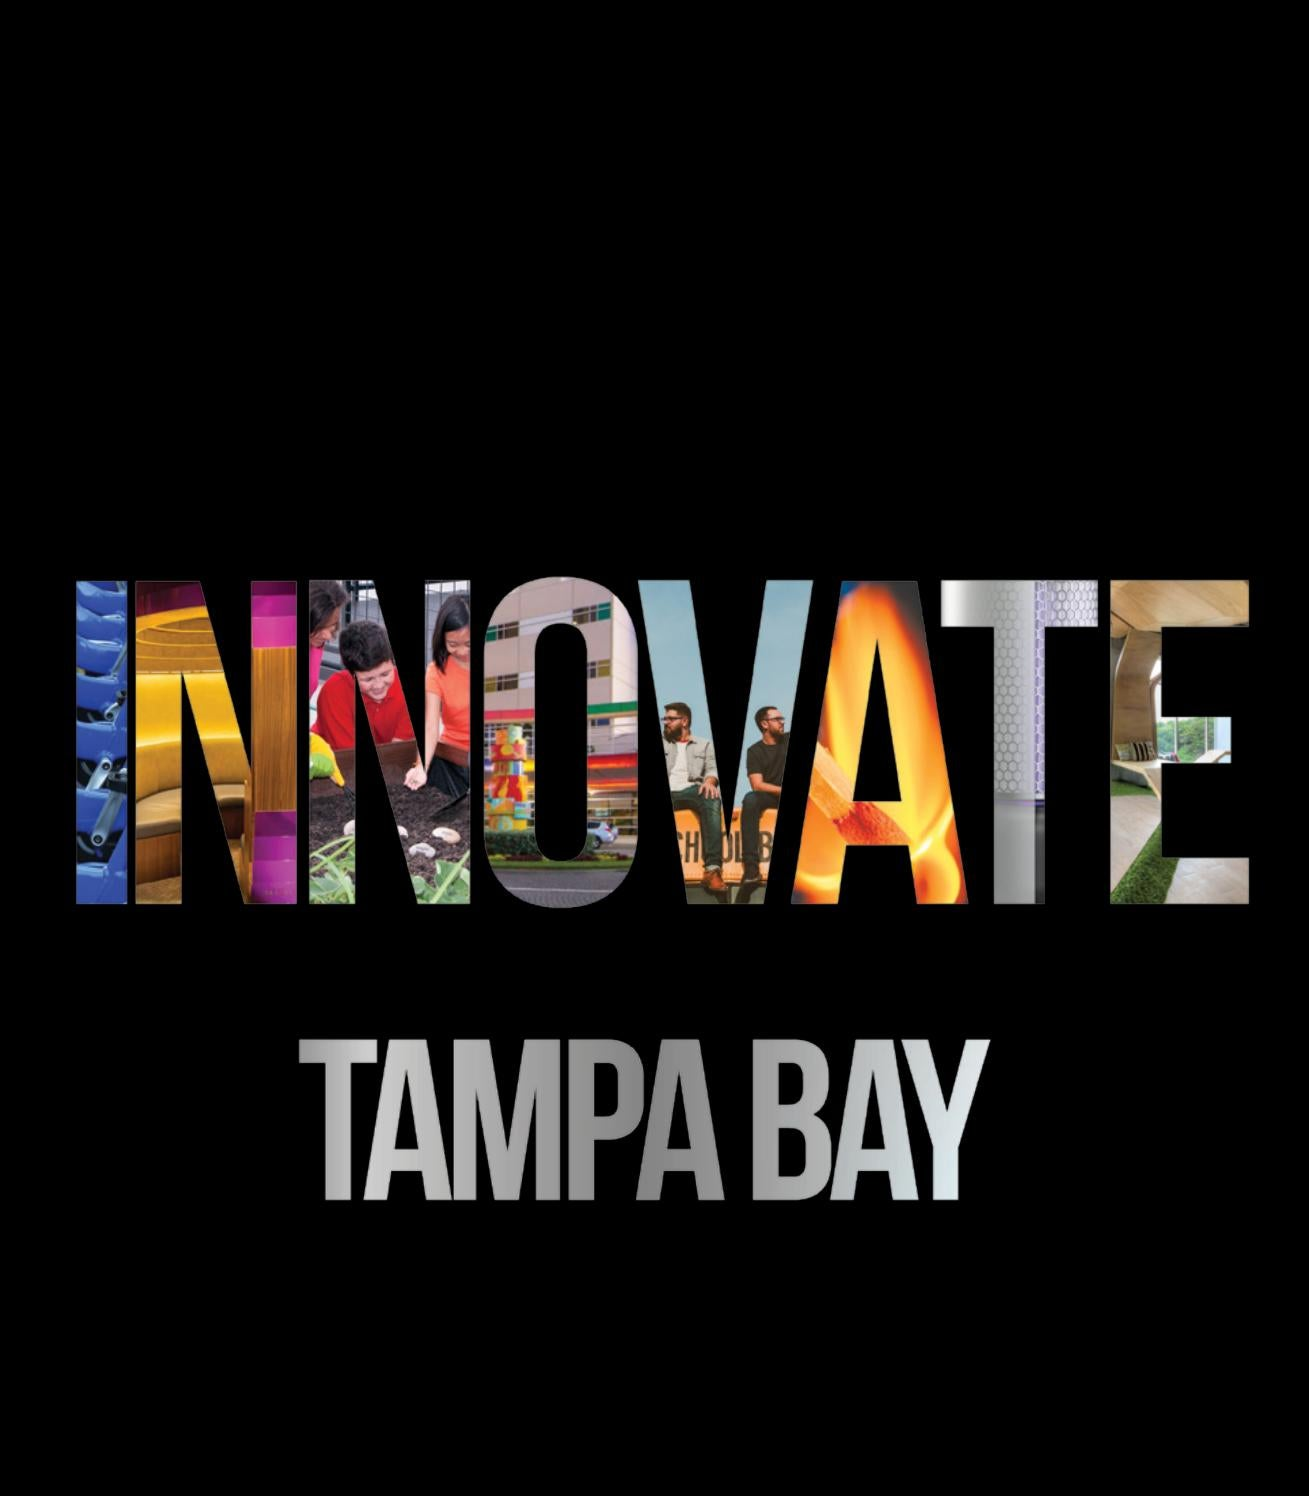 Innovate tampa bay 1 final by sven boermeester issuu freerunsca Gallery